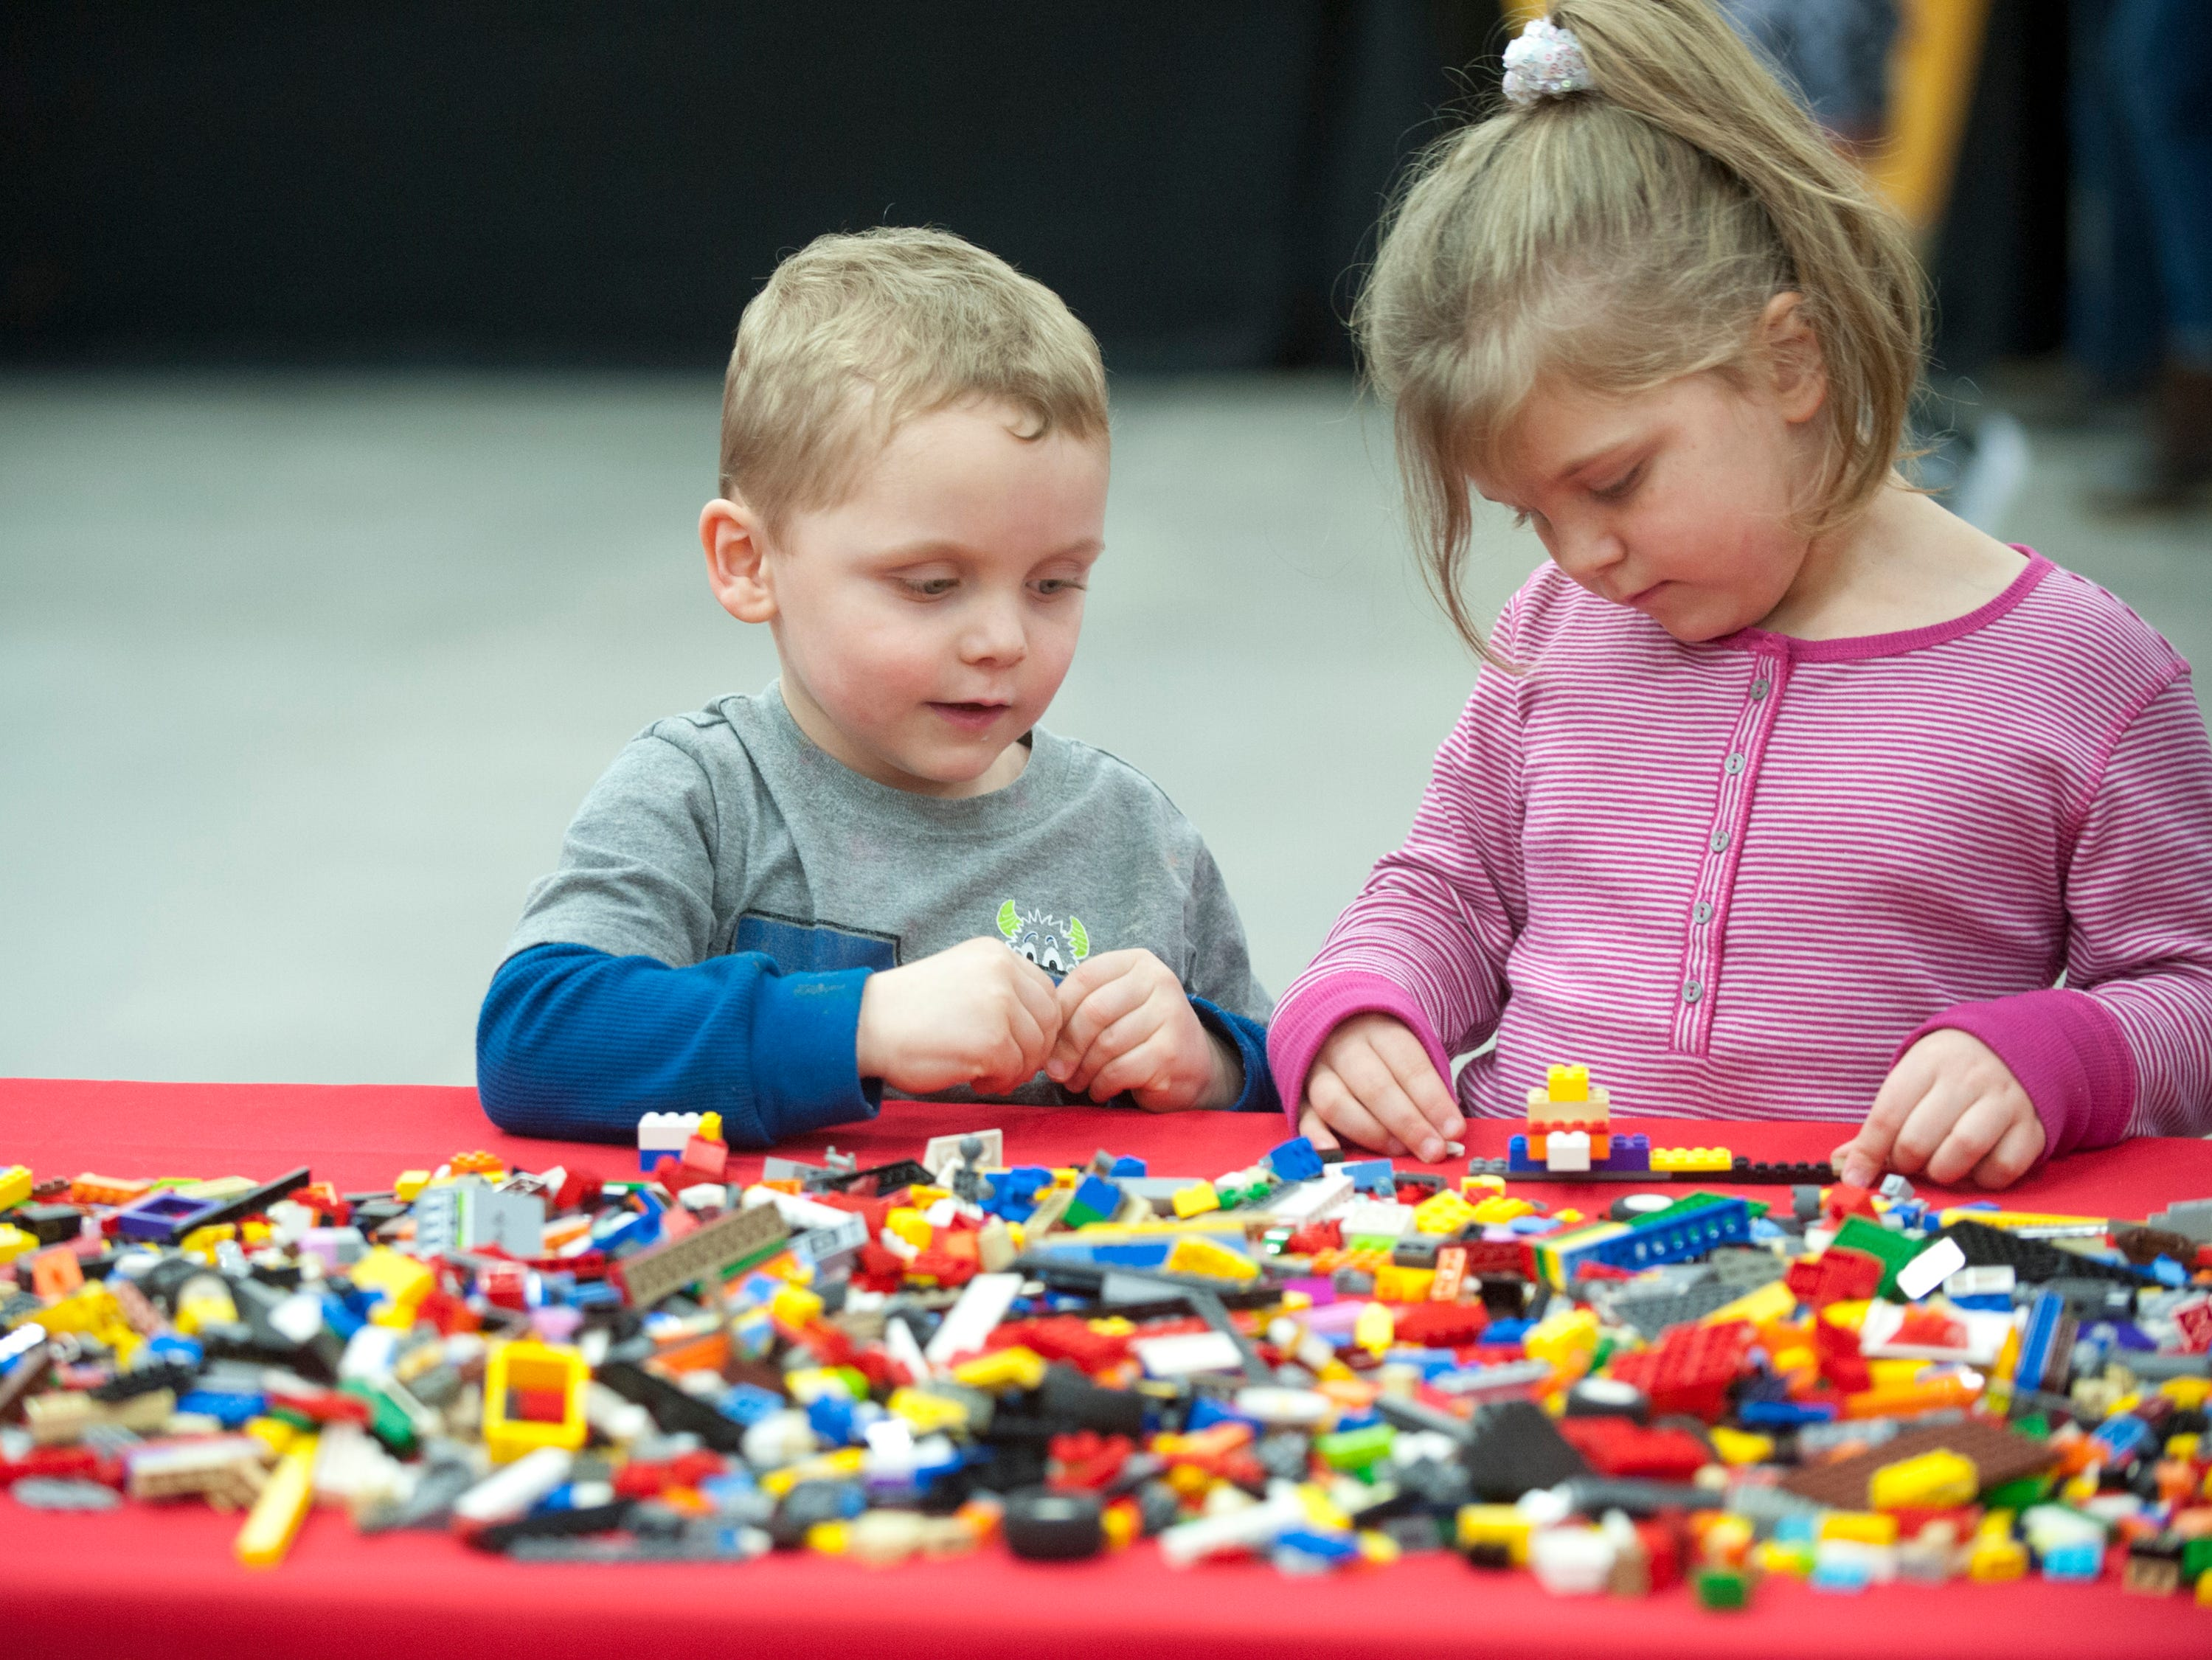 """Timmy Riviello, age 4, and hi sister key, age 5, o Irvington, play with Legos in the Building Zone"""" at the BrickUniverse Lego Fan Convention at the Kentucky International Convention Center in downtown Louisville.19 January 2019"""